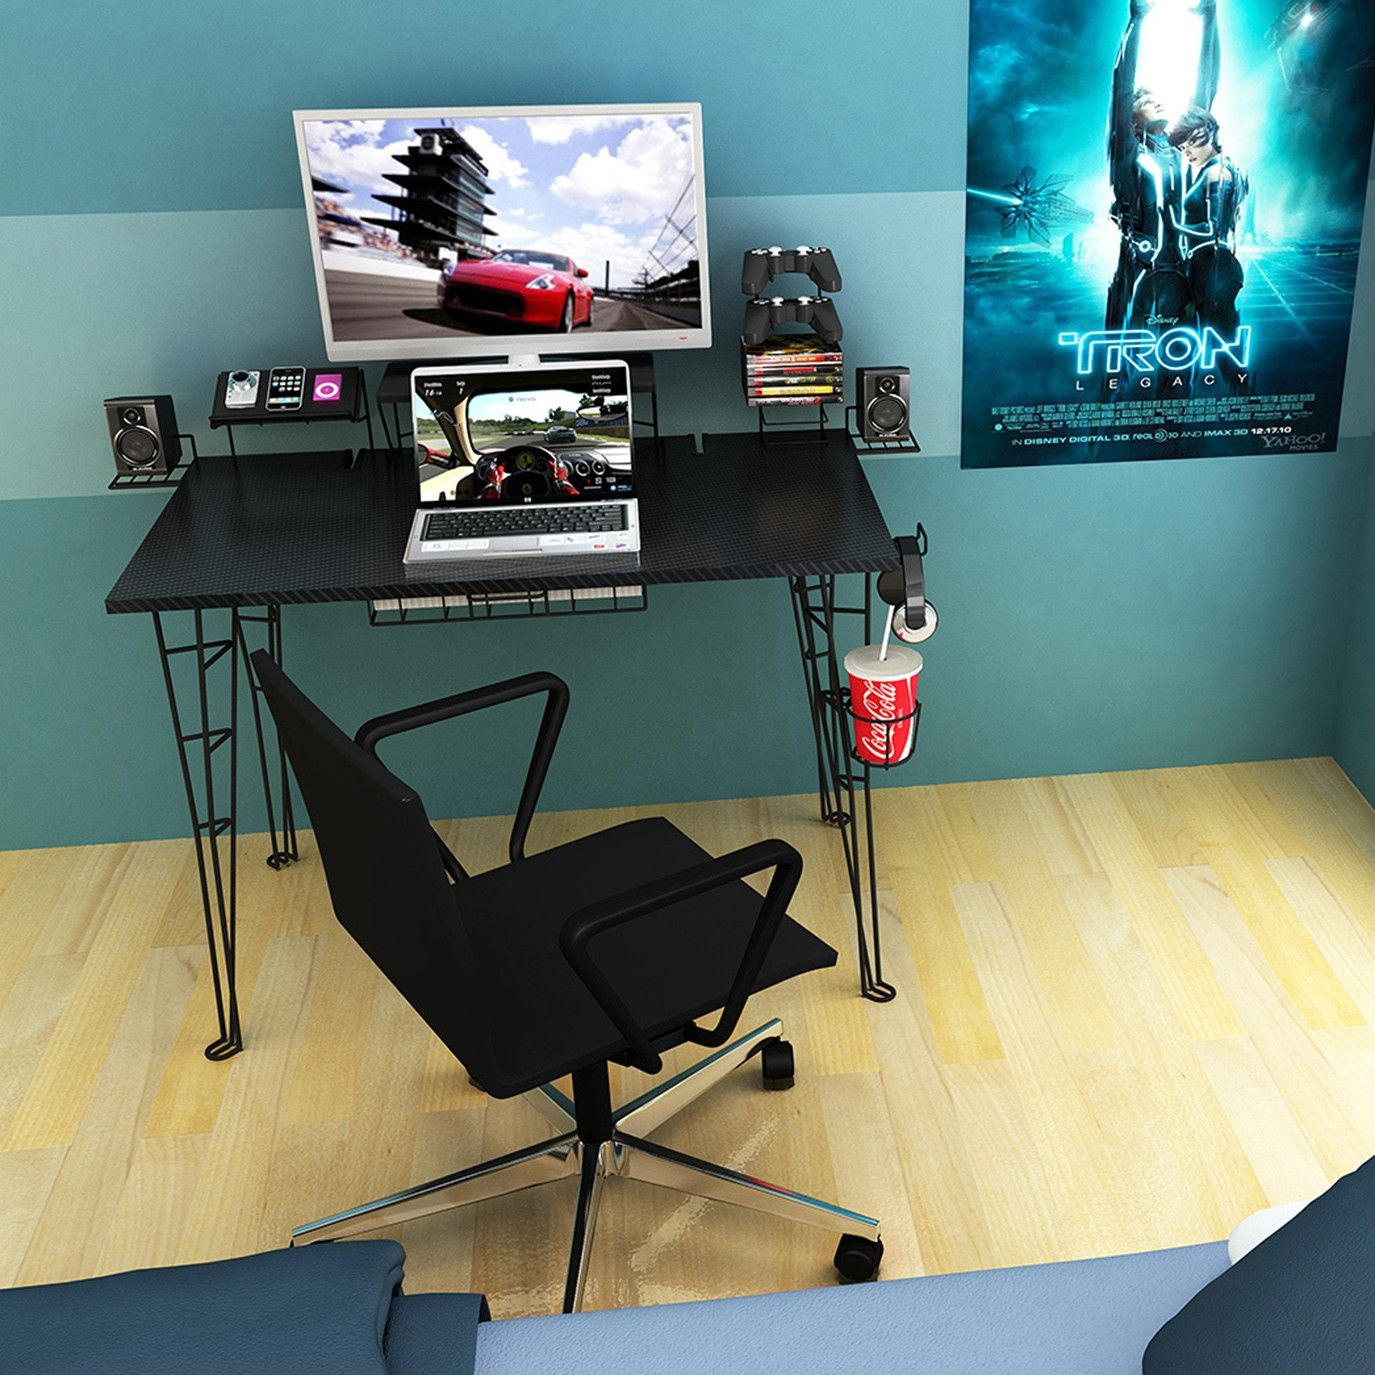 home office desktop pc 2015. Bright Gaming Computer Desk : One Of The Best Desks 2015 Home Office Desktop Pc K